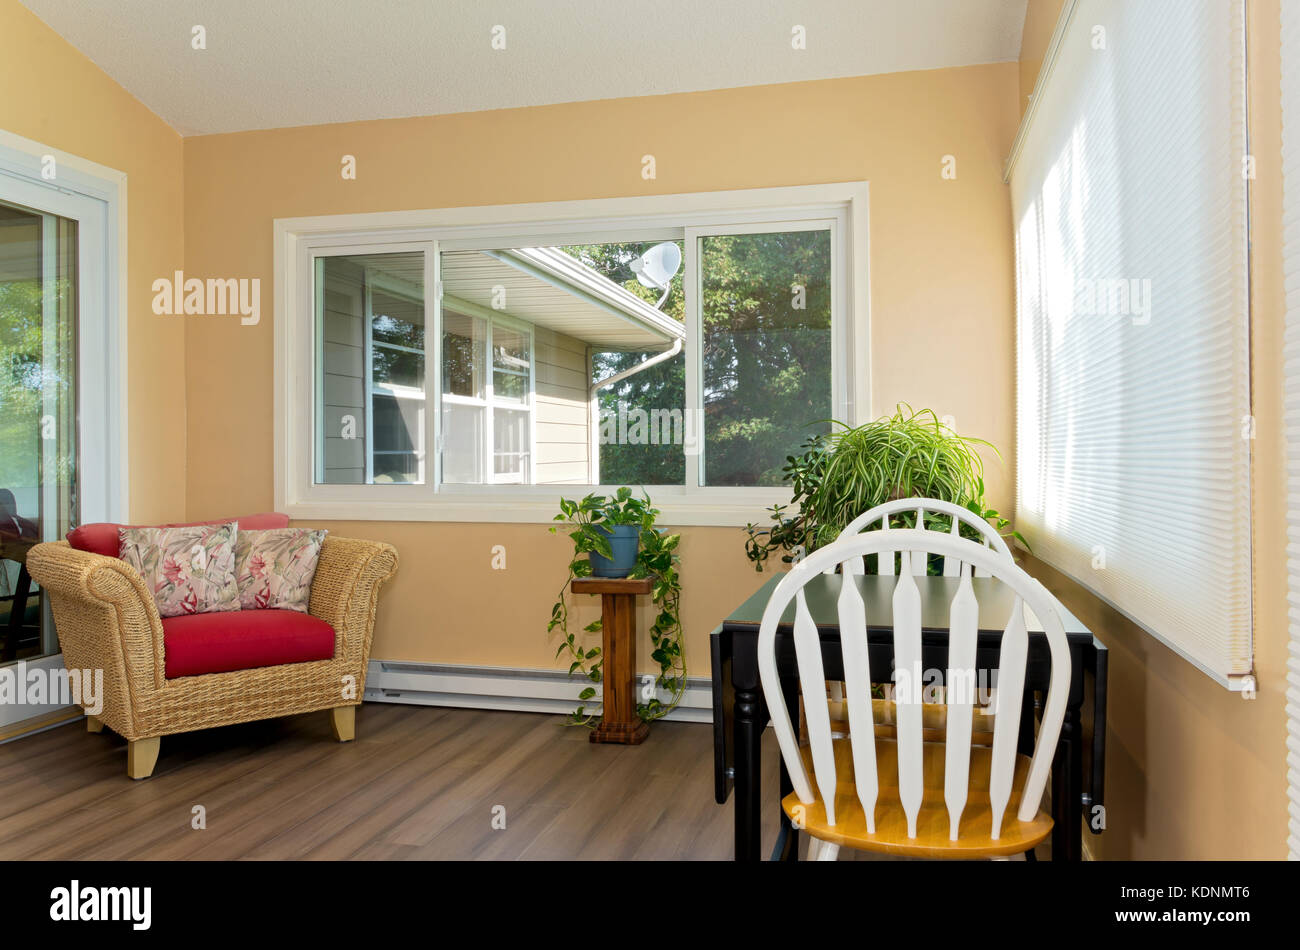 interior of sunroom addition to home and decor including small